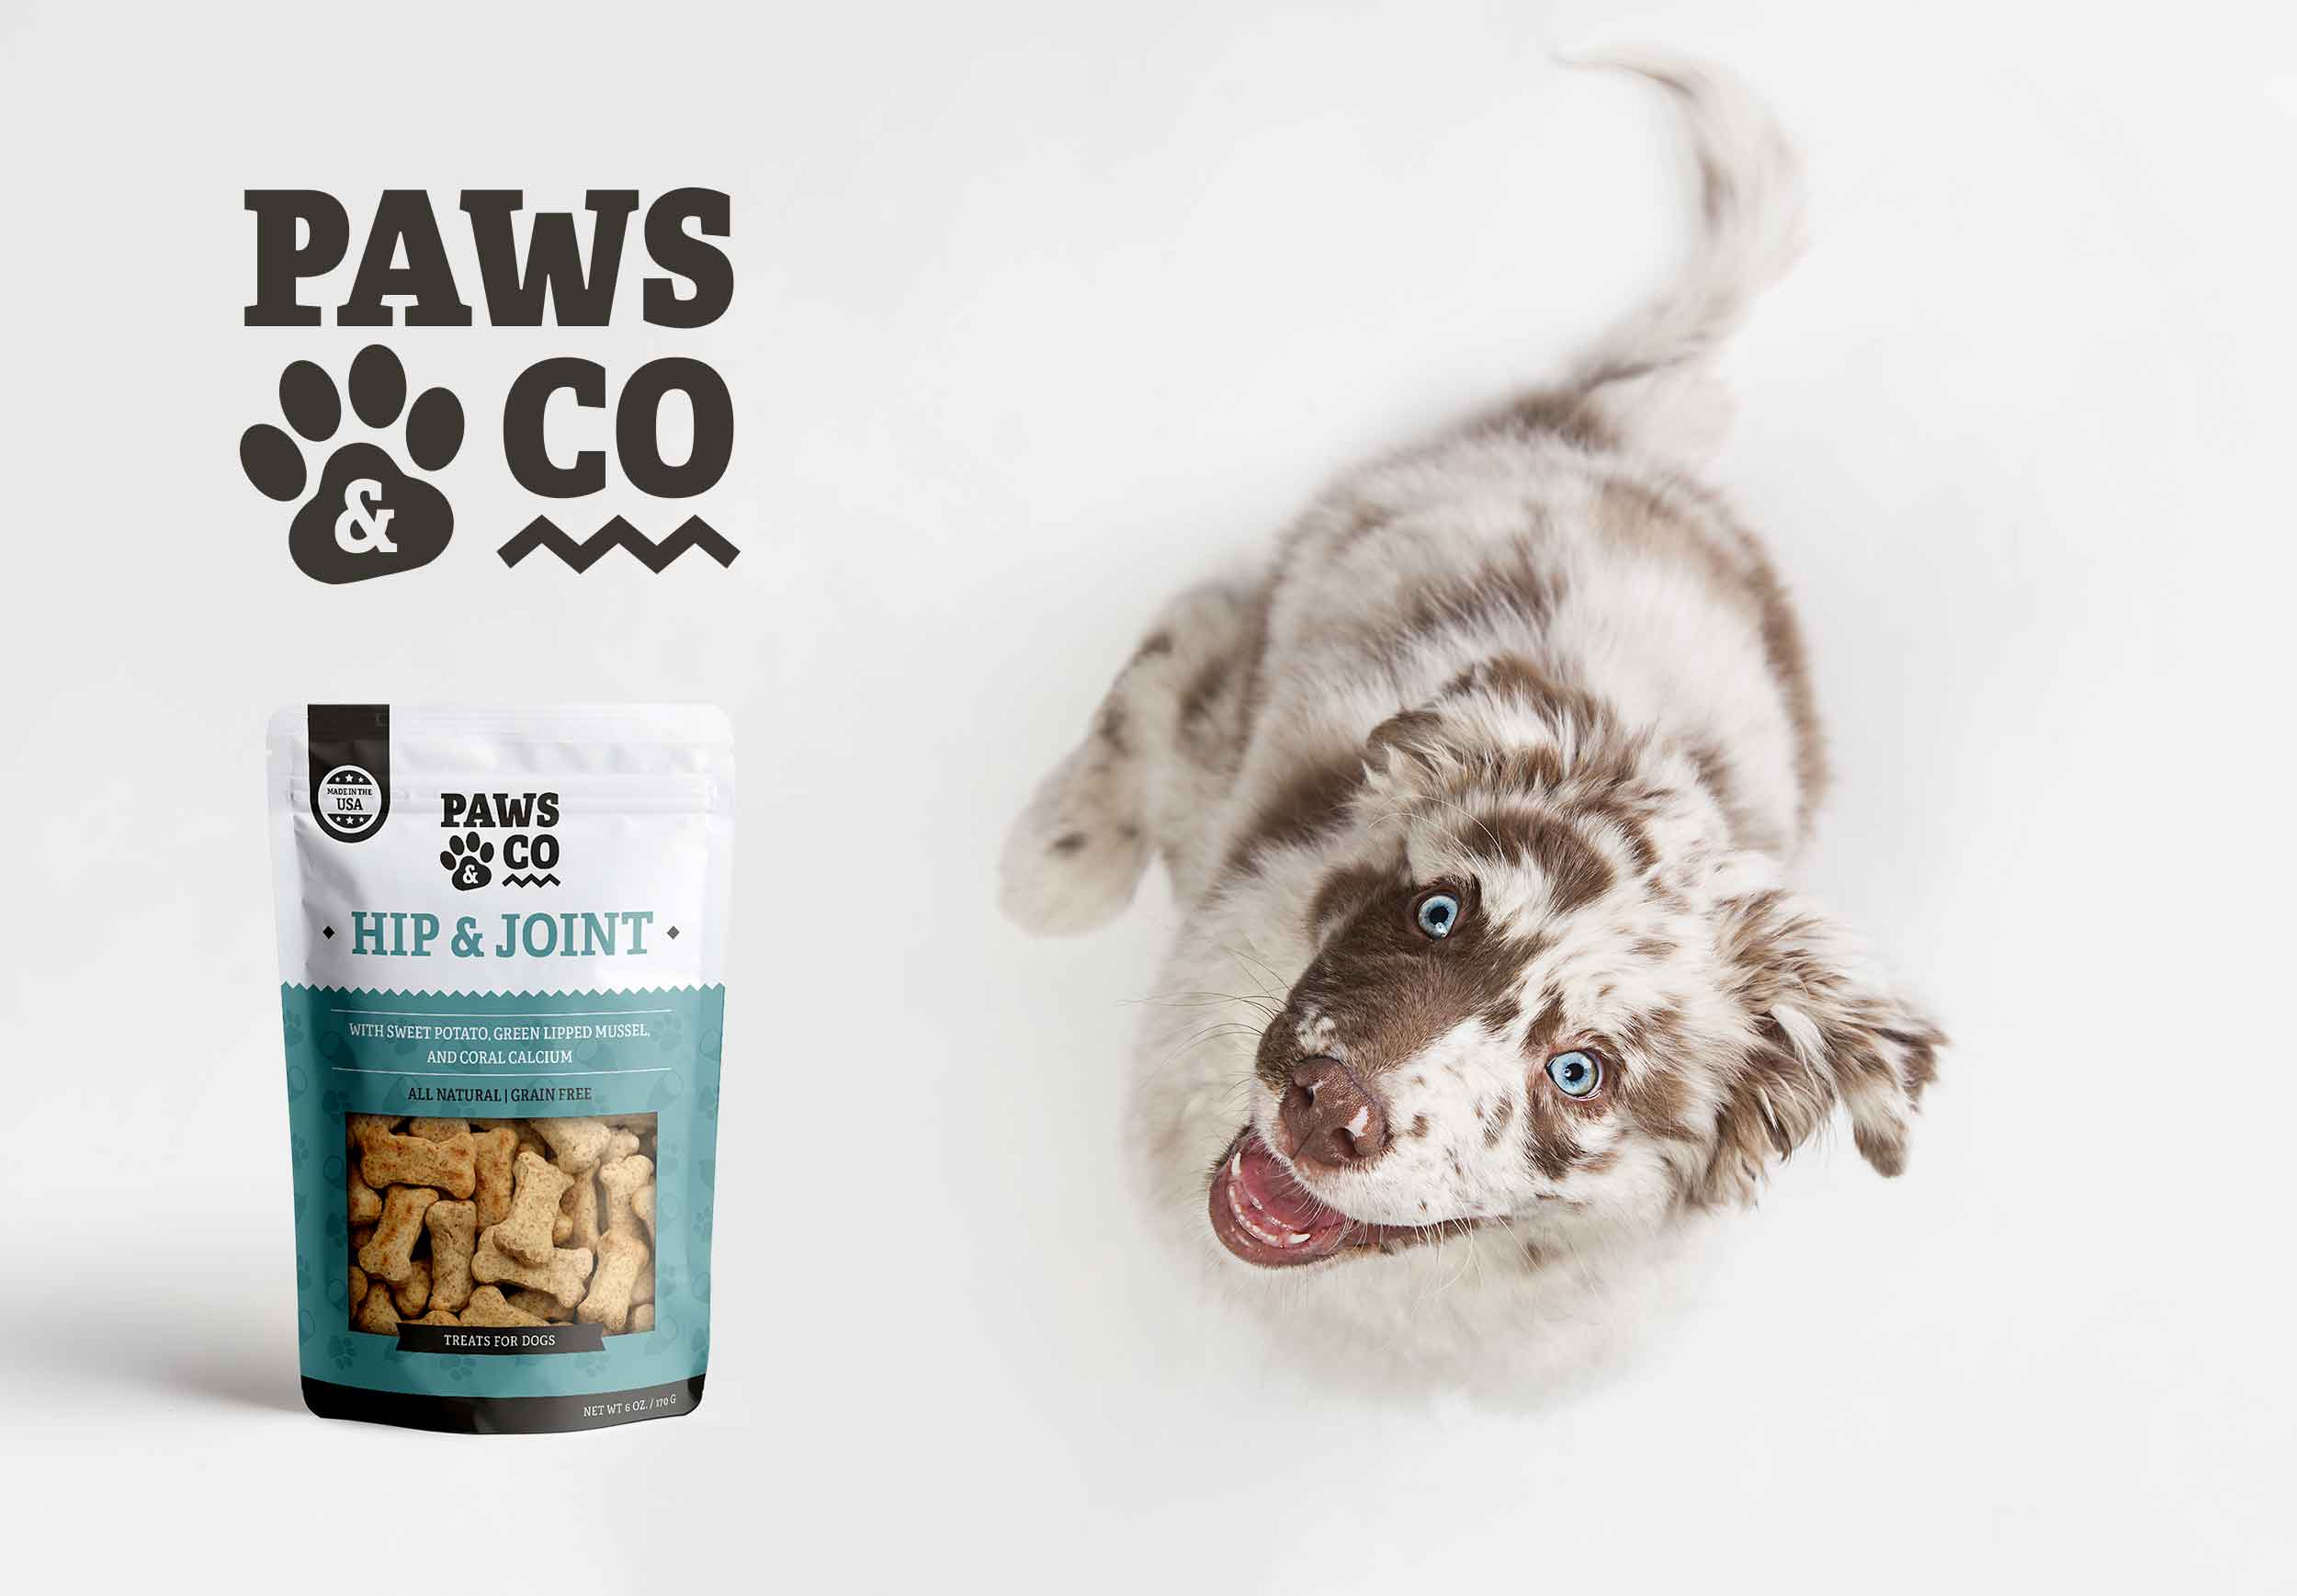 Paws & Co Ad